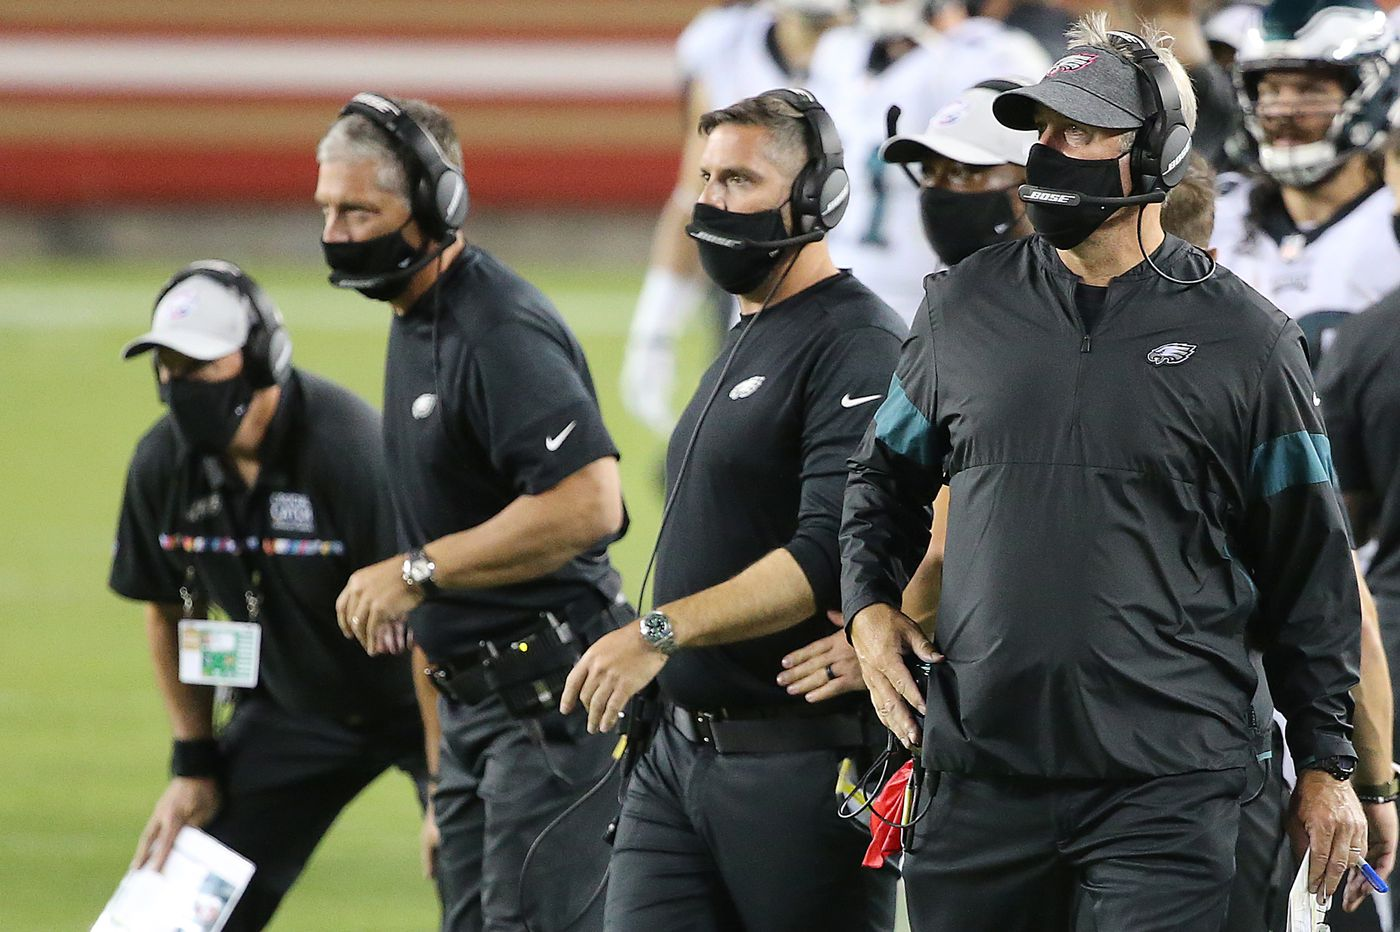 Weary Eagles unfairly face peppy Steelers because of the Titans' COVID-19 outbreak | Marcus Hayes